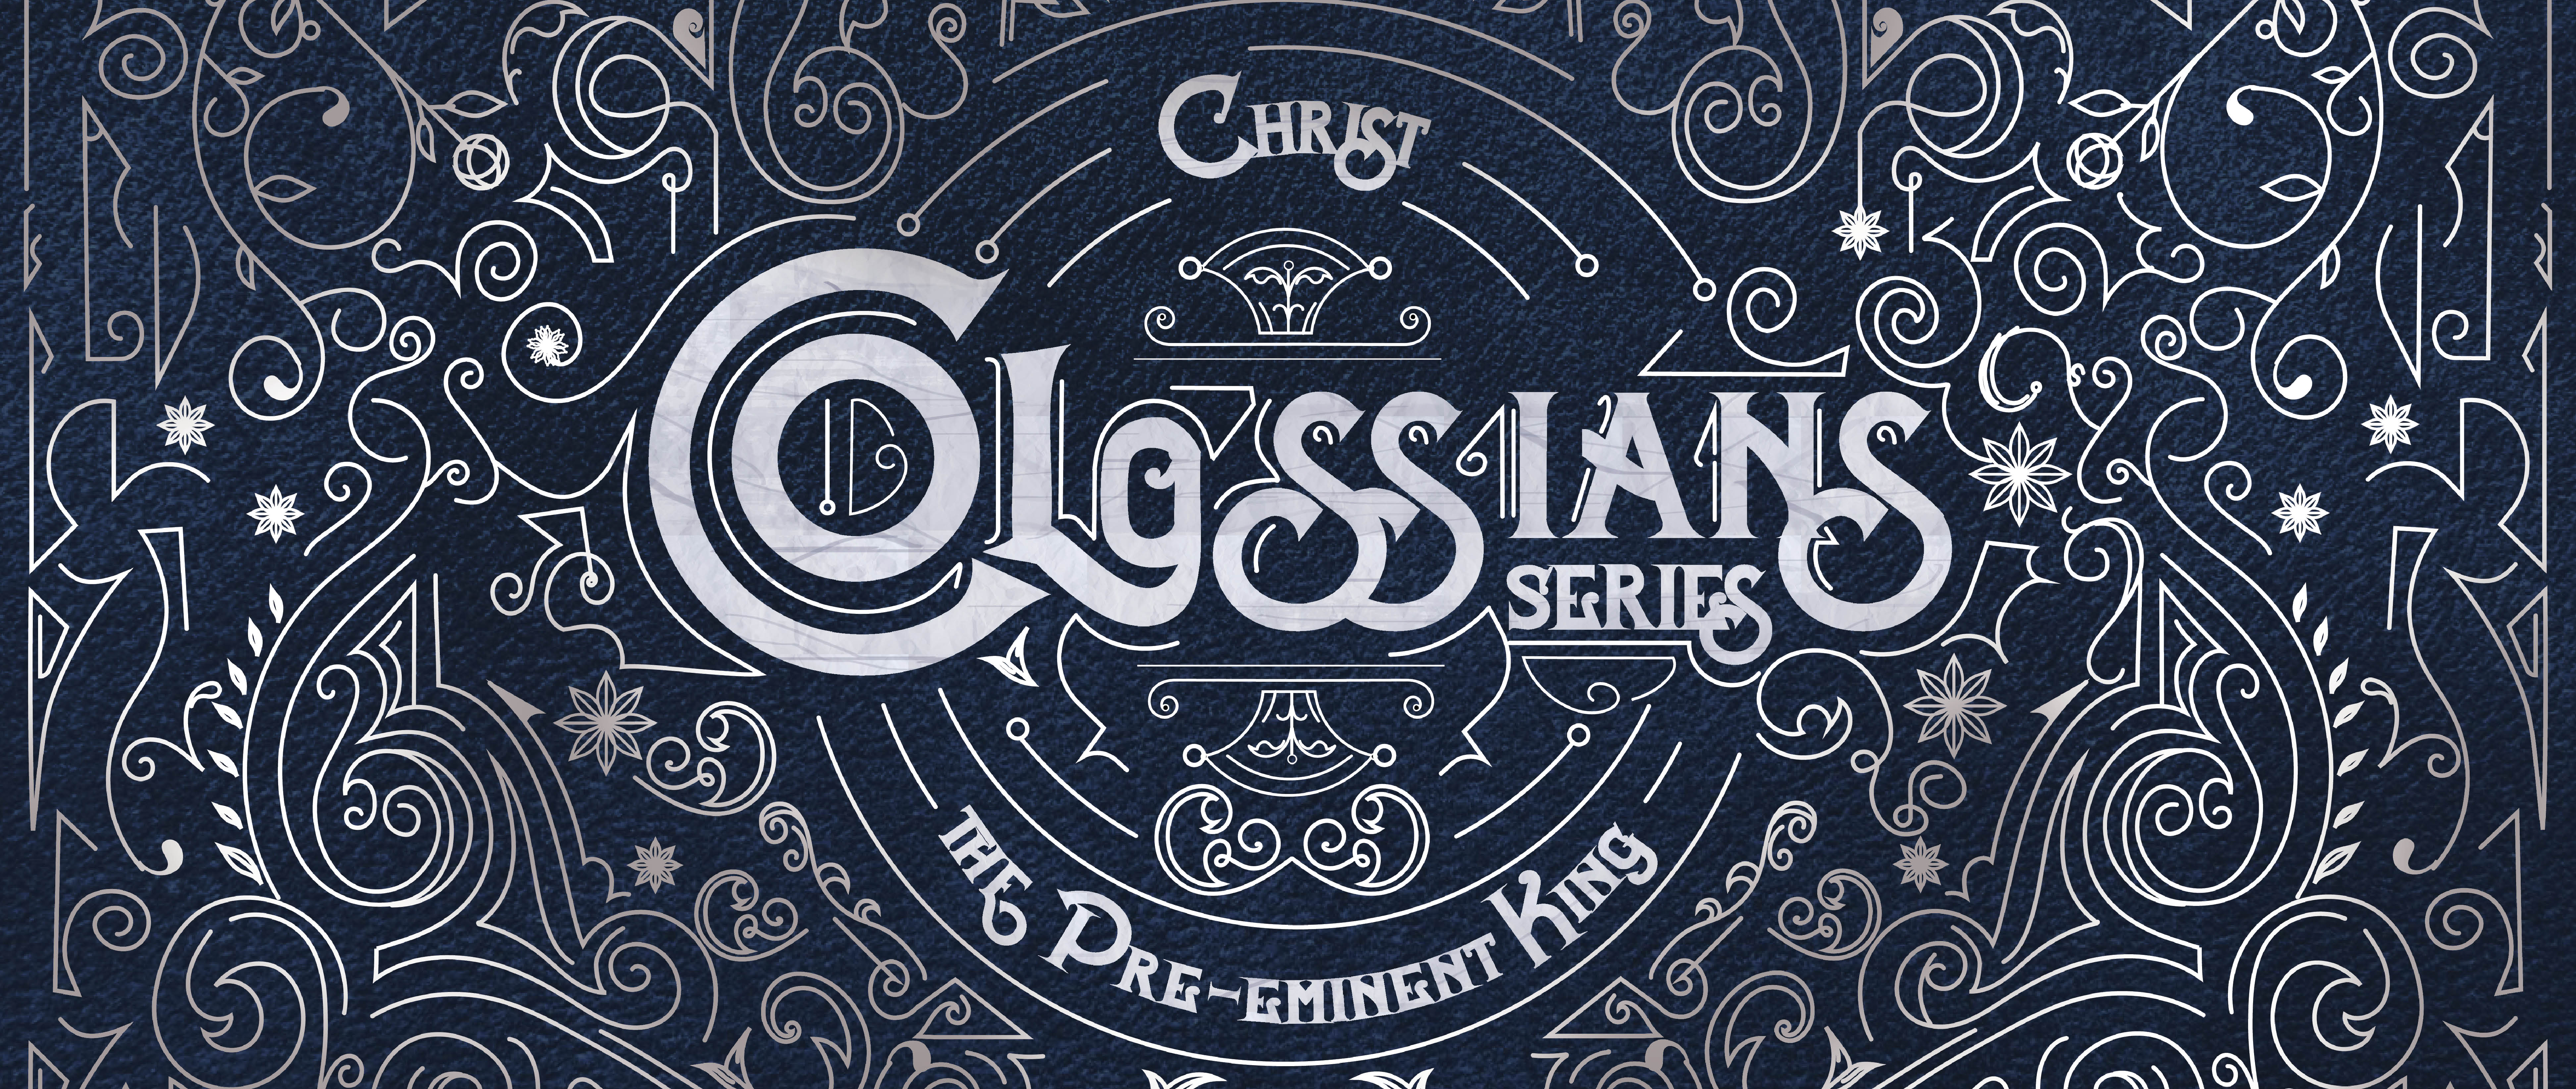 Colossians Series Main Web Banner